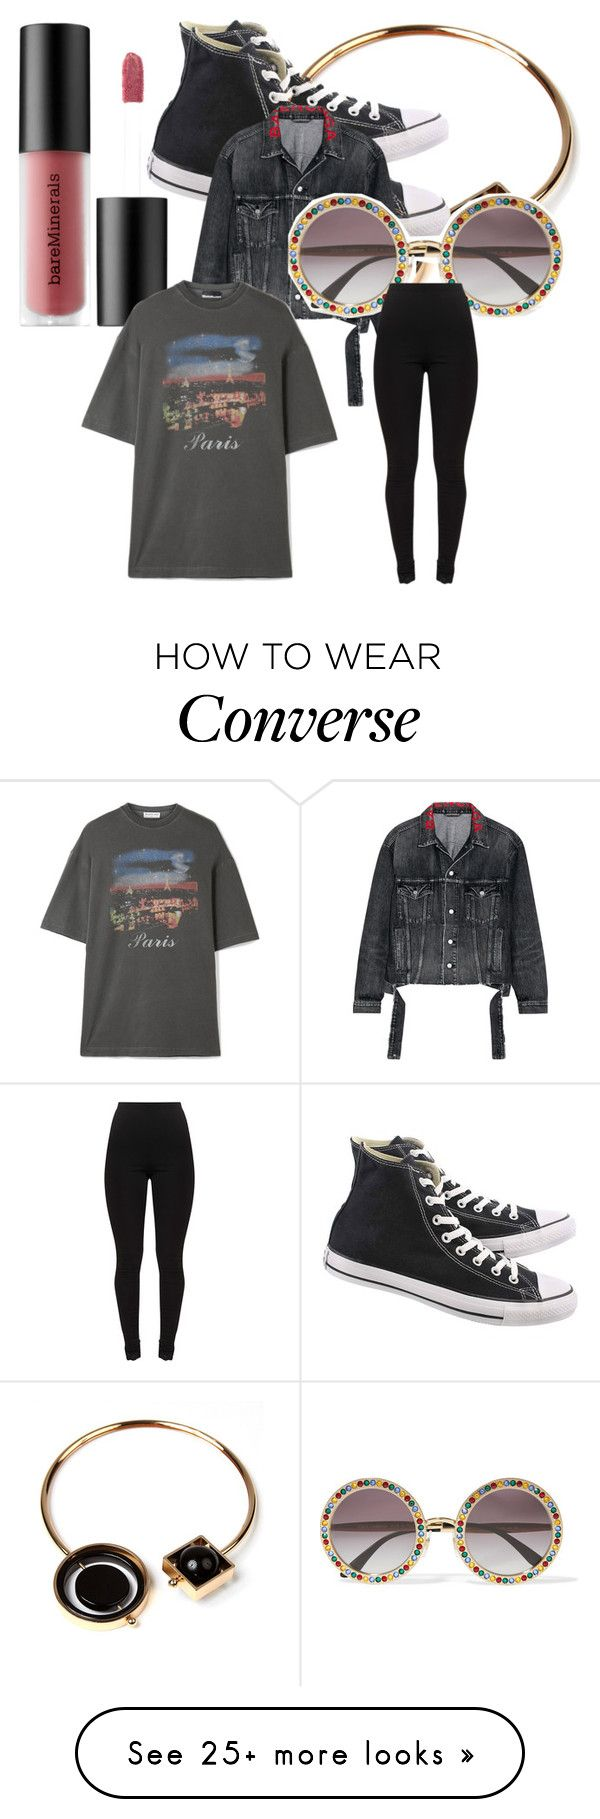 """!"" by lauravf on Polyvore featuring Amrita Singh, Converse, Balenciaga, Dolce&Gabbana and Bare Escentuals"